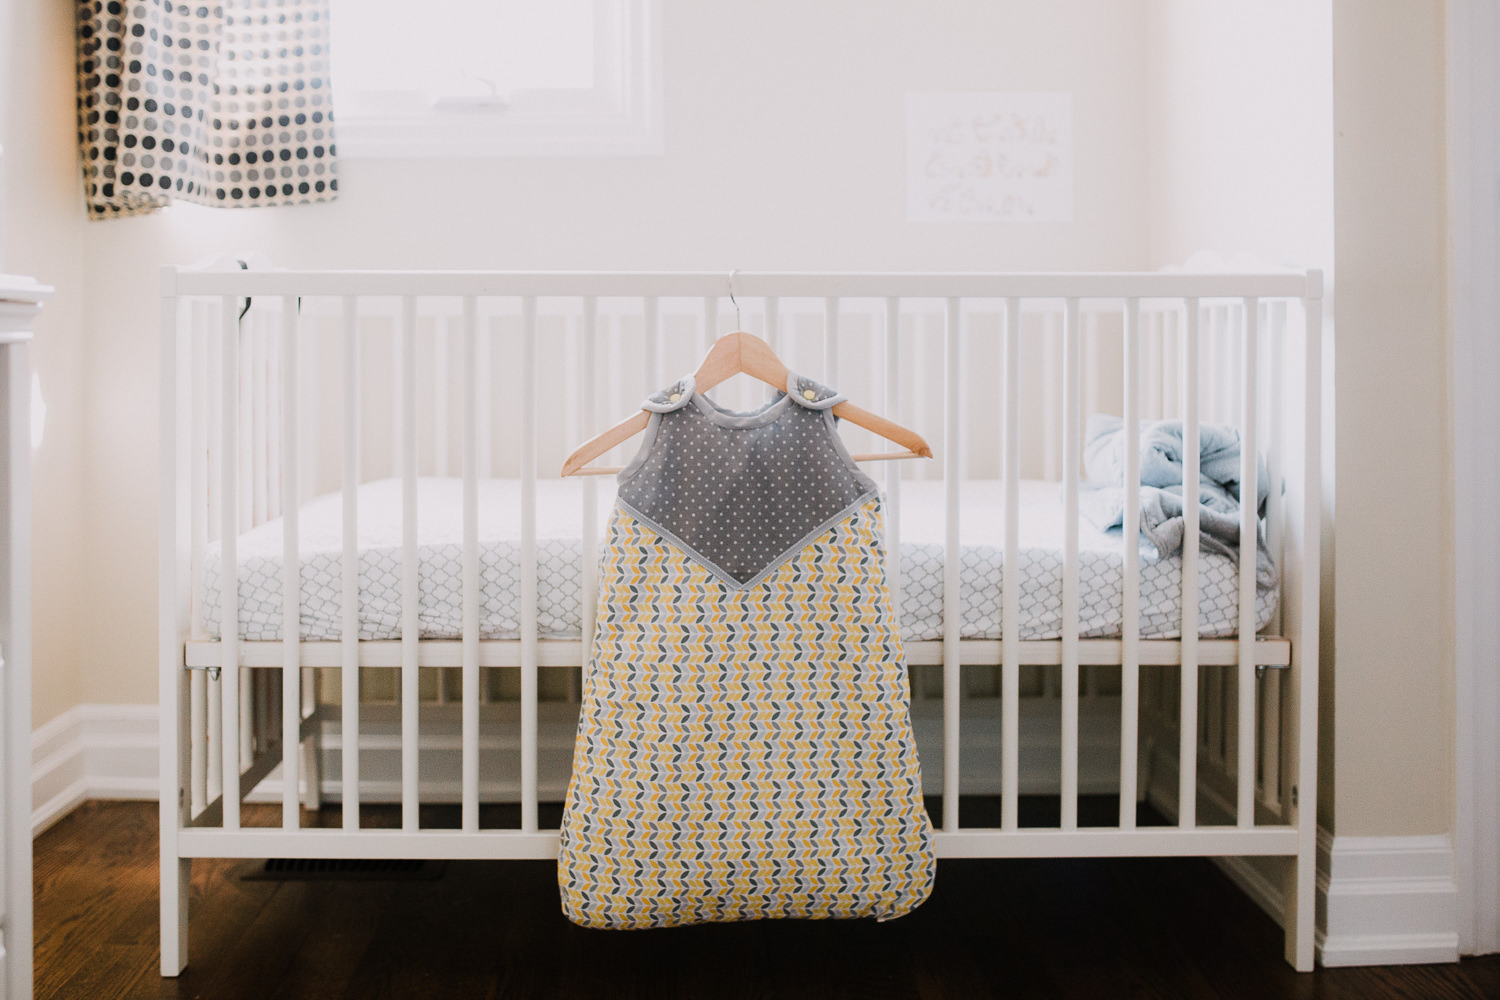 handmade yellow and grey sleep sack hanging on crib in nursery - Markham Lifestyle Photography